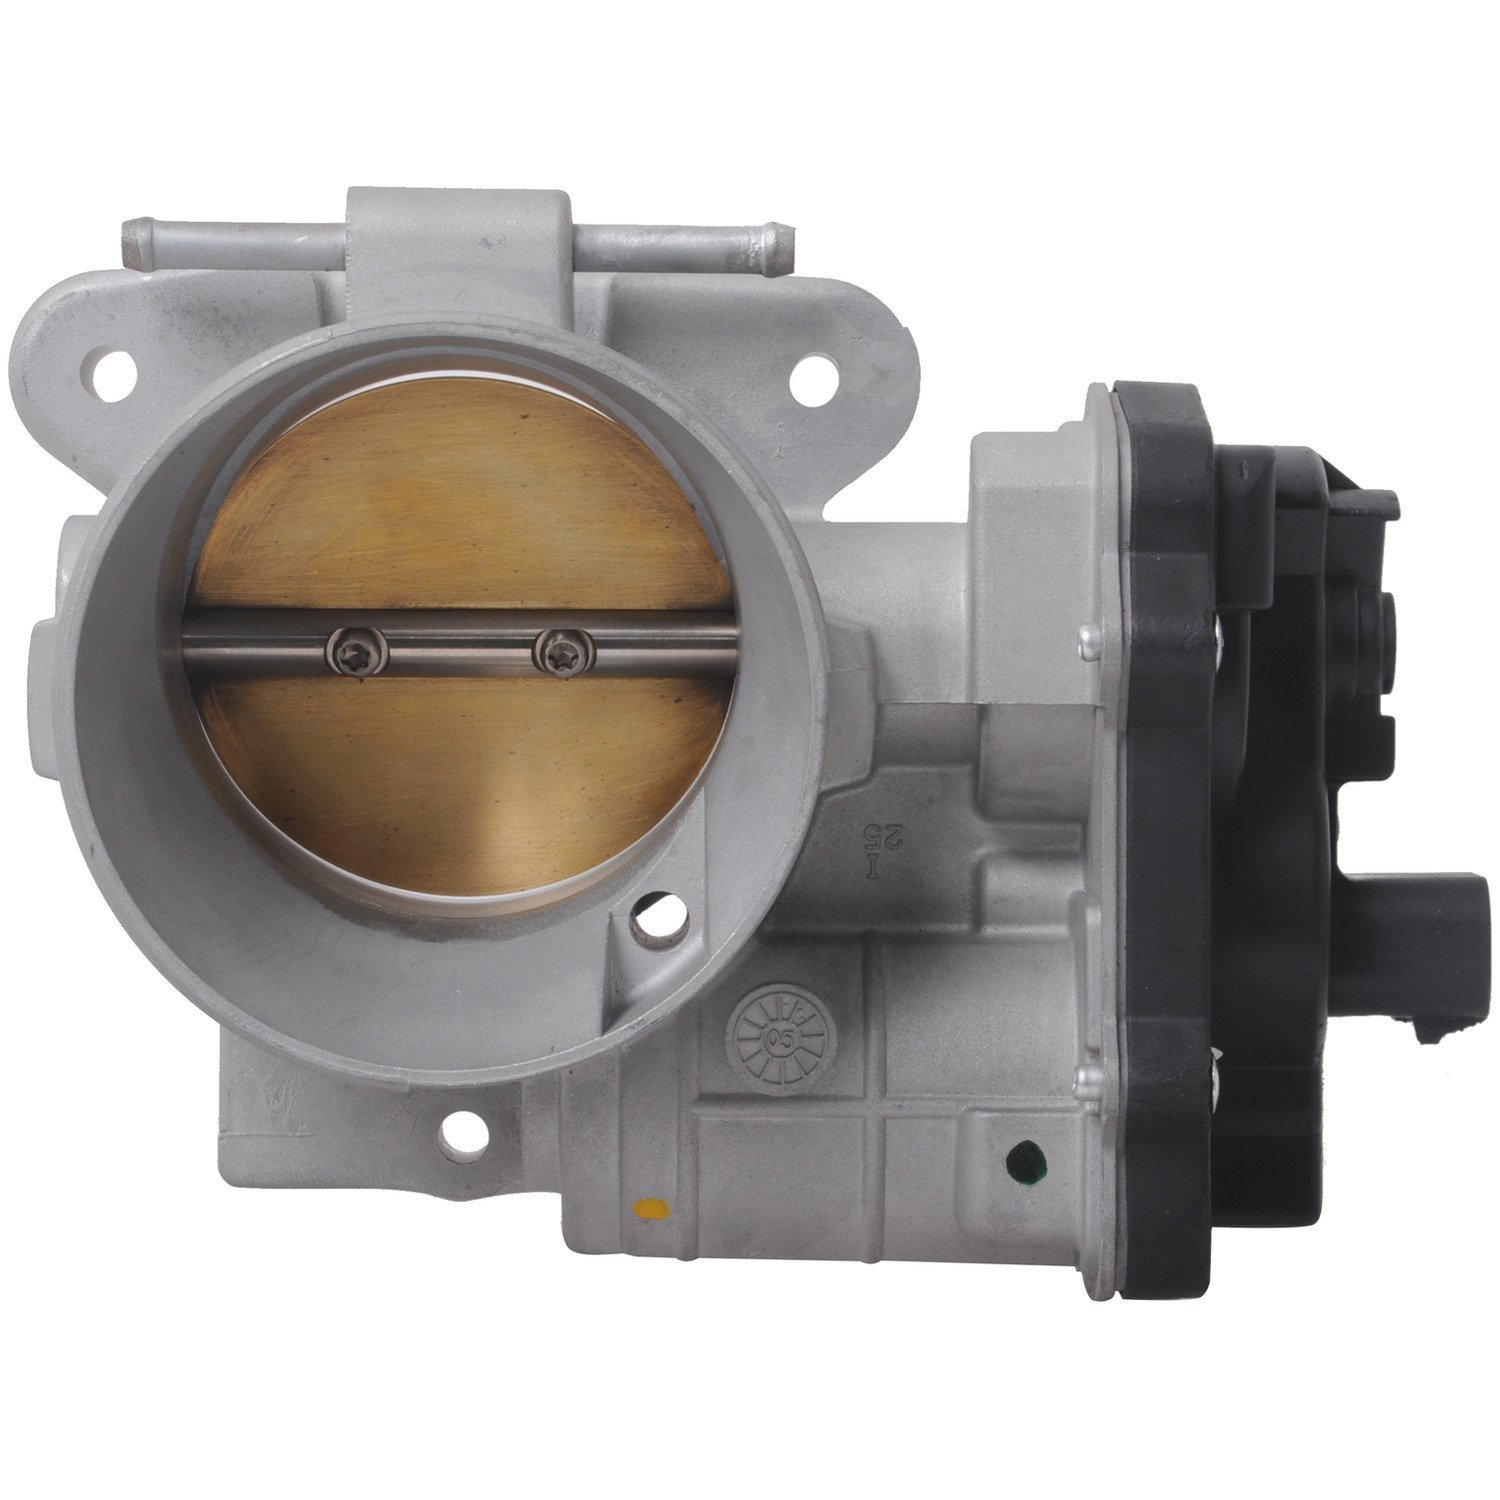 Cardone 67-3000 Remanufactured Electronic Throttle Body (ETB) (Certified Refurbished) by A1 Cardone